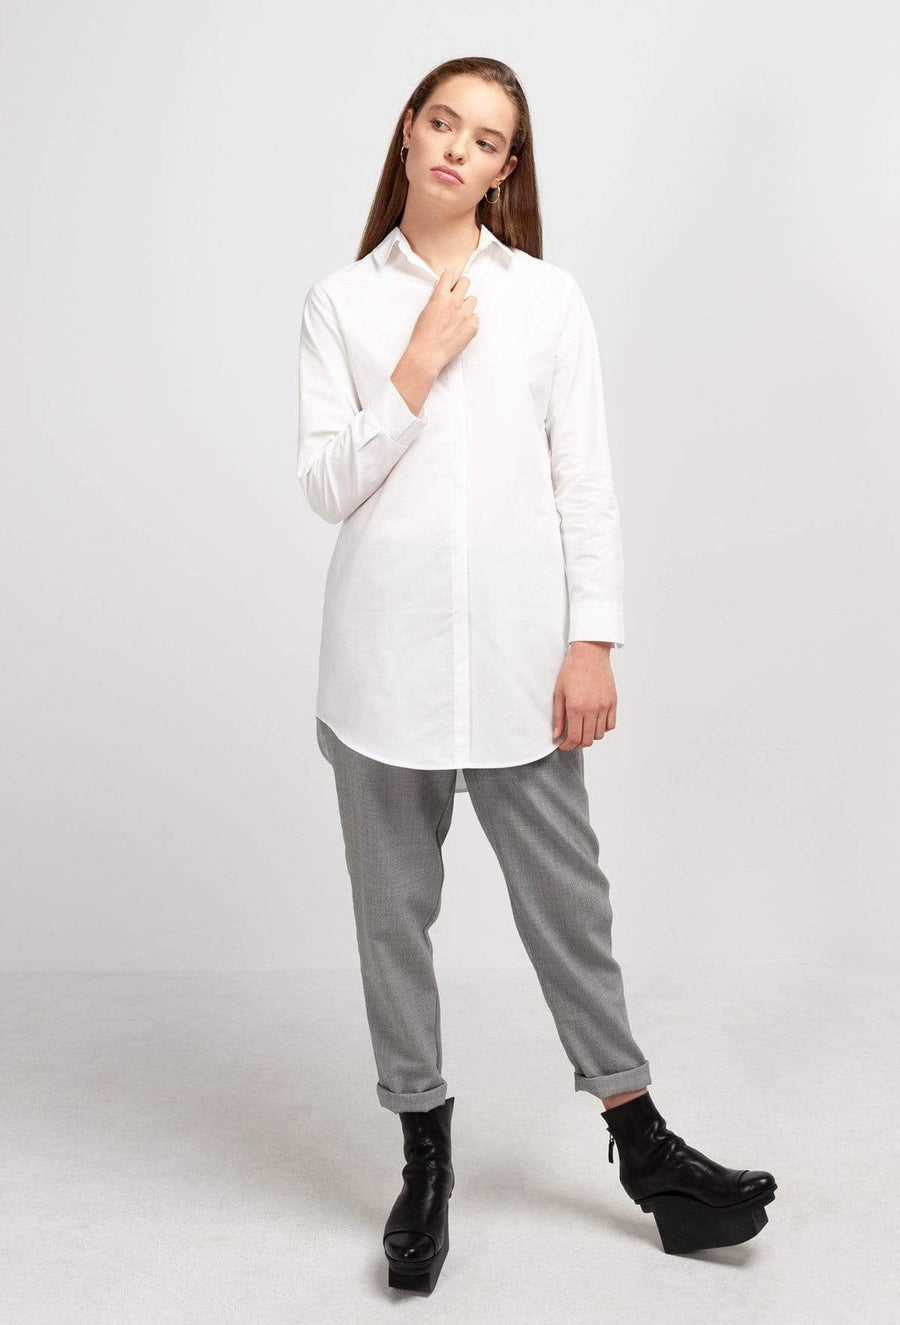 SHIPSHEIP top Joan Long Blouse. Organic Cotton. sustainable fashion ethical fashion